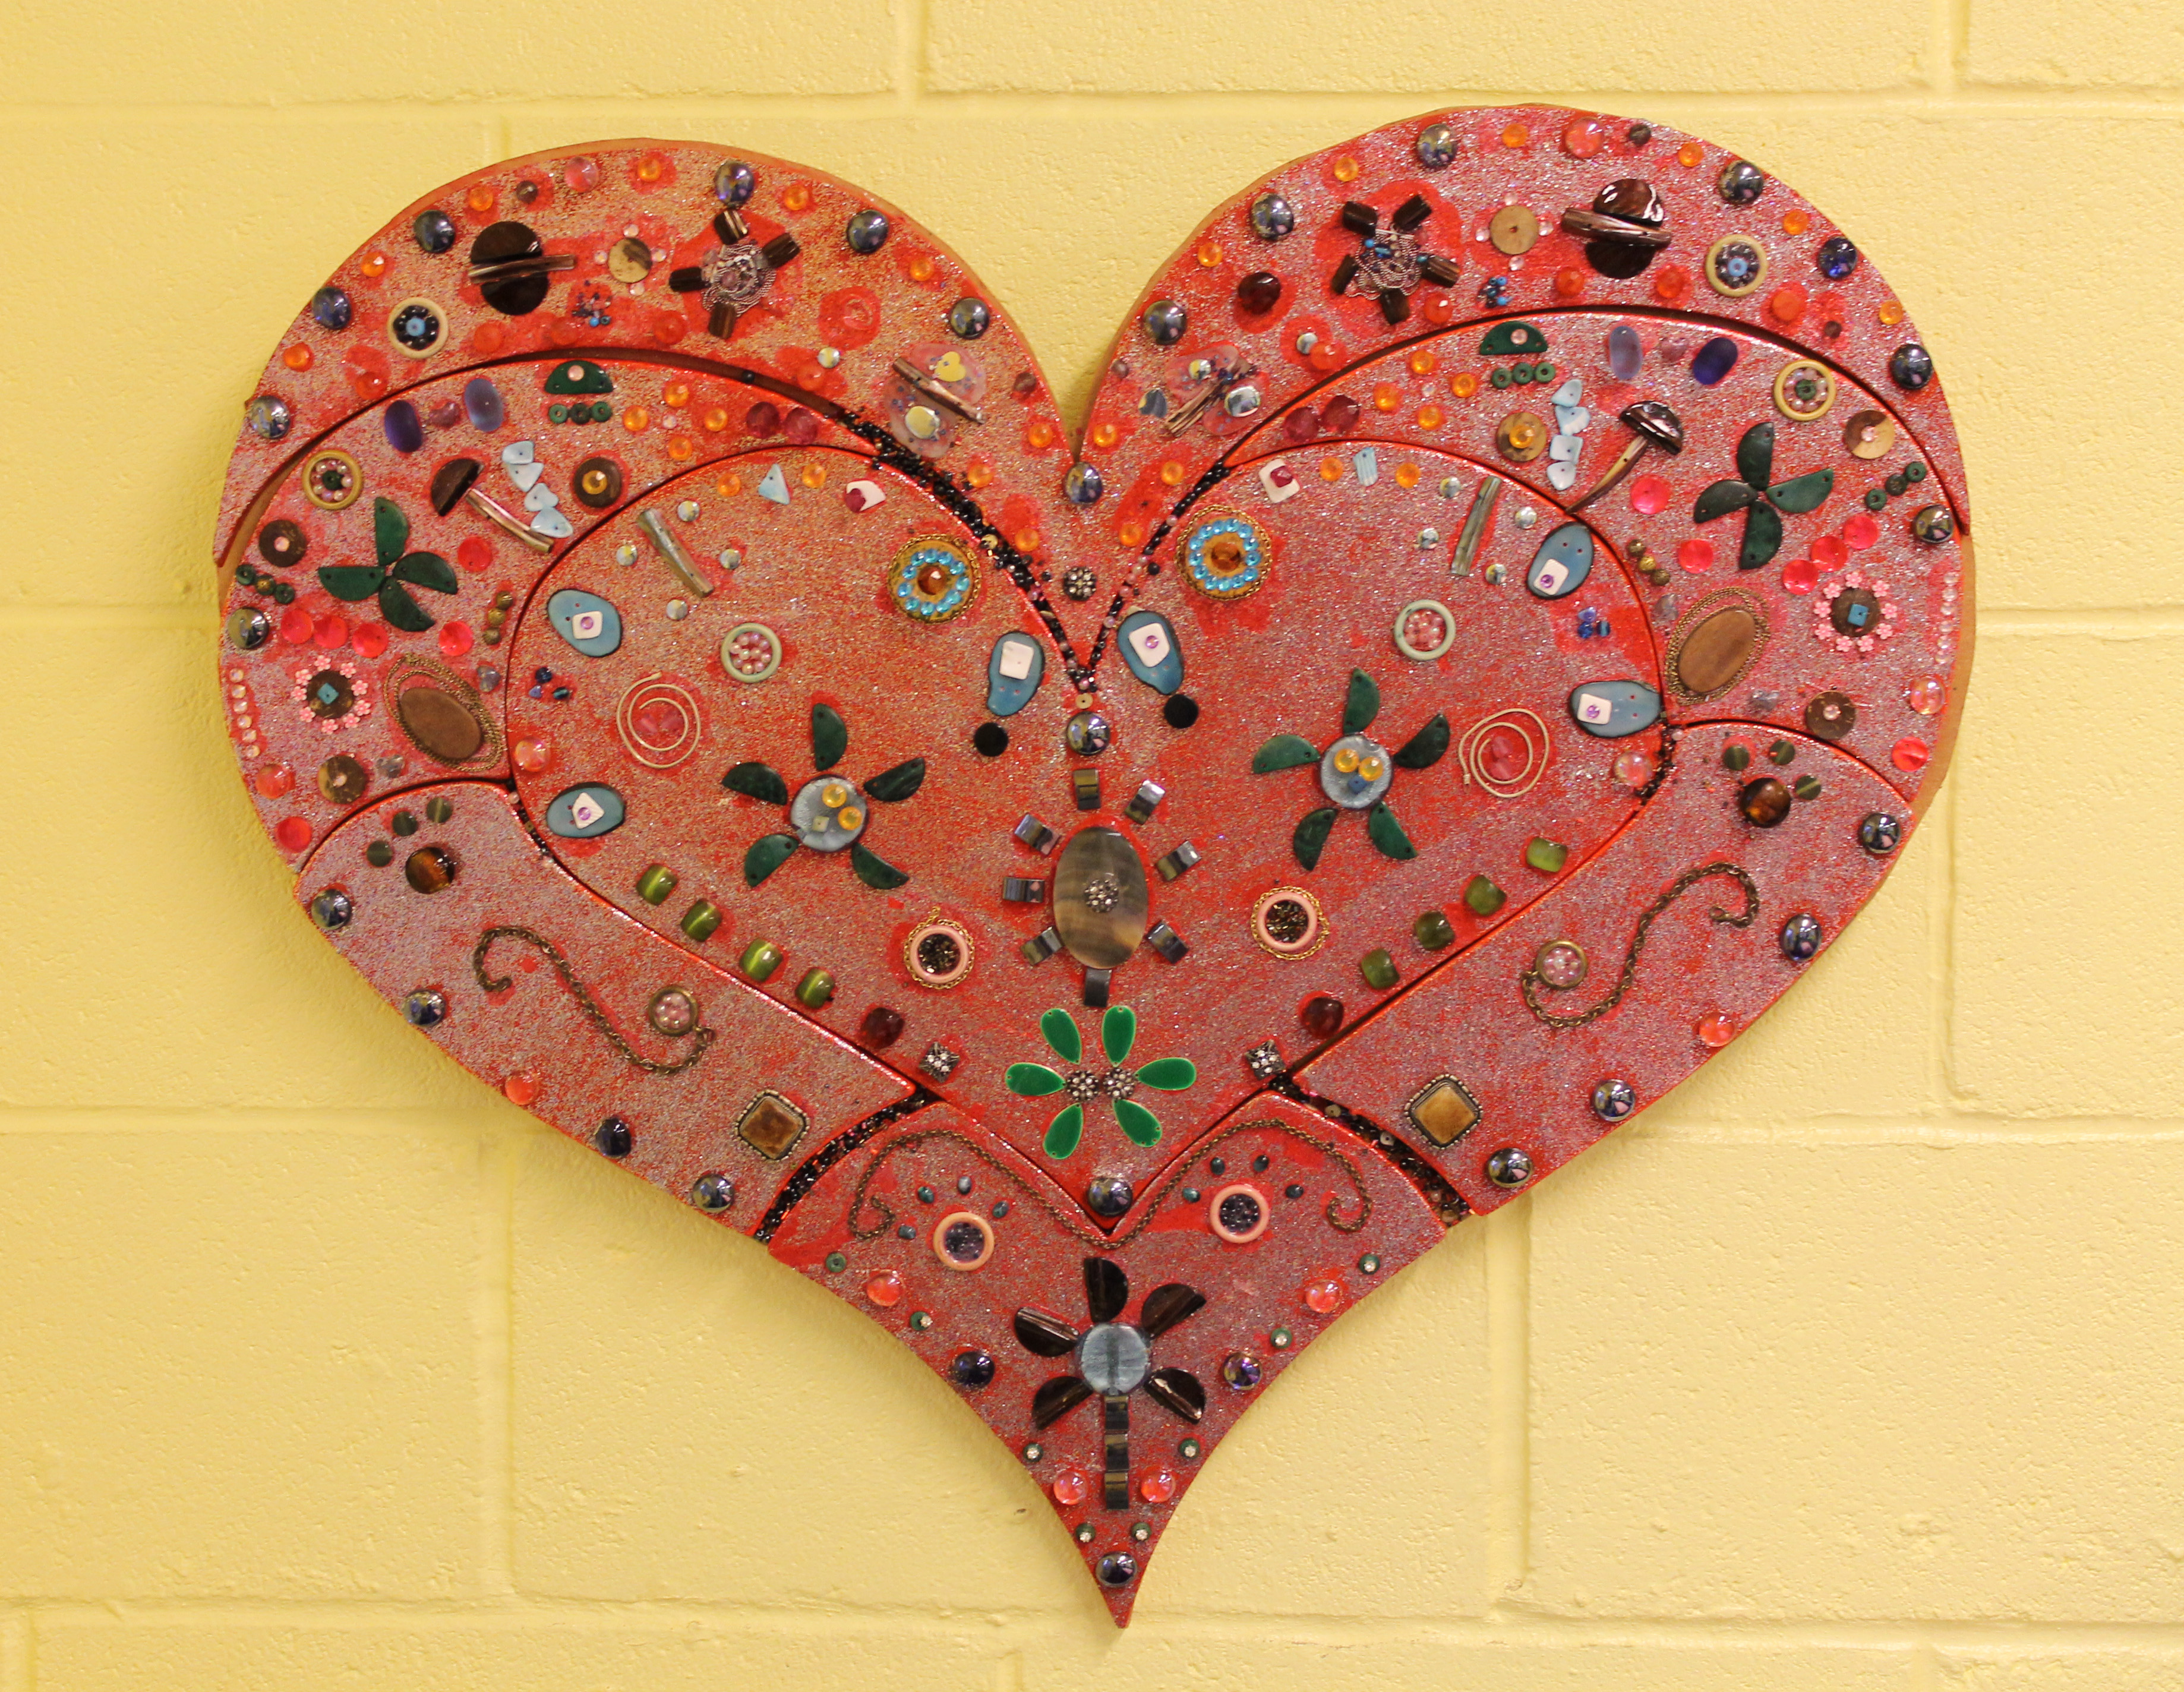 Arts And Crafts For Adults Ideas Art Craft With Learning